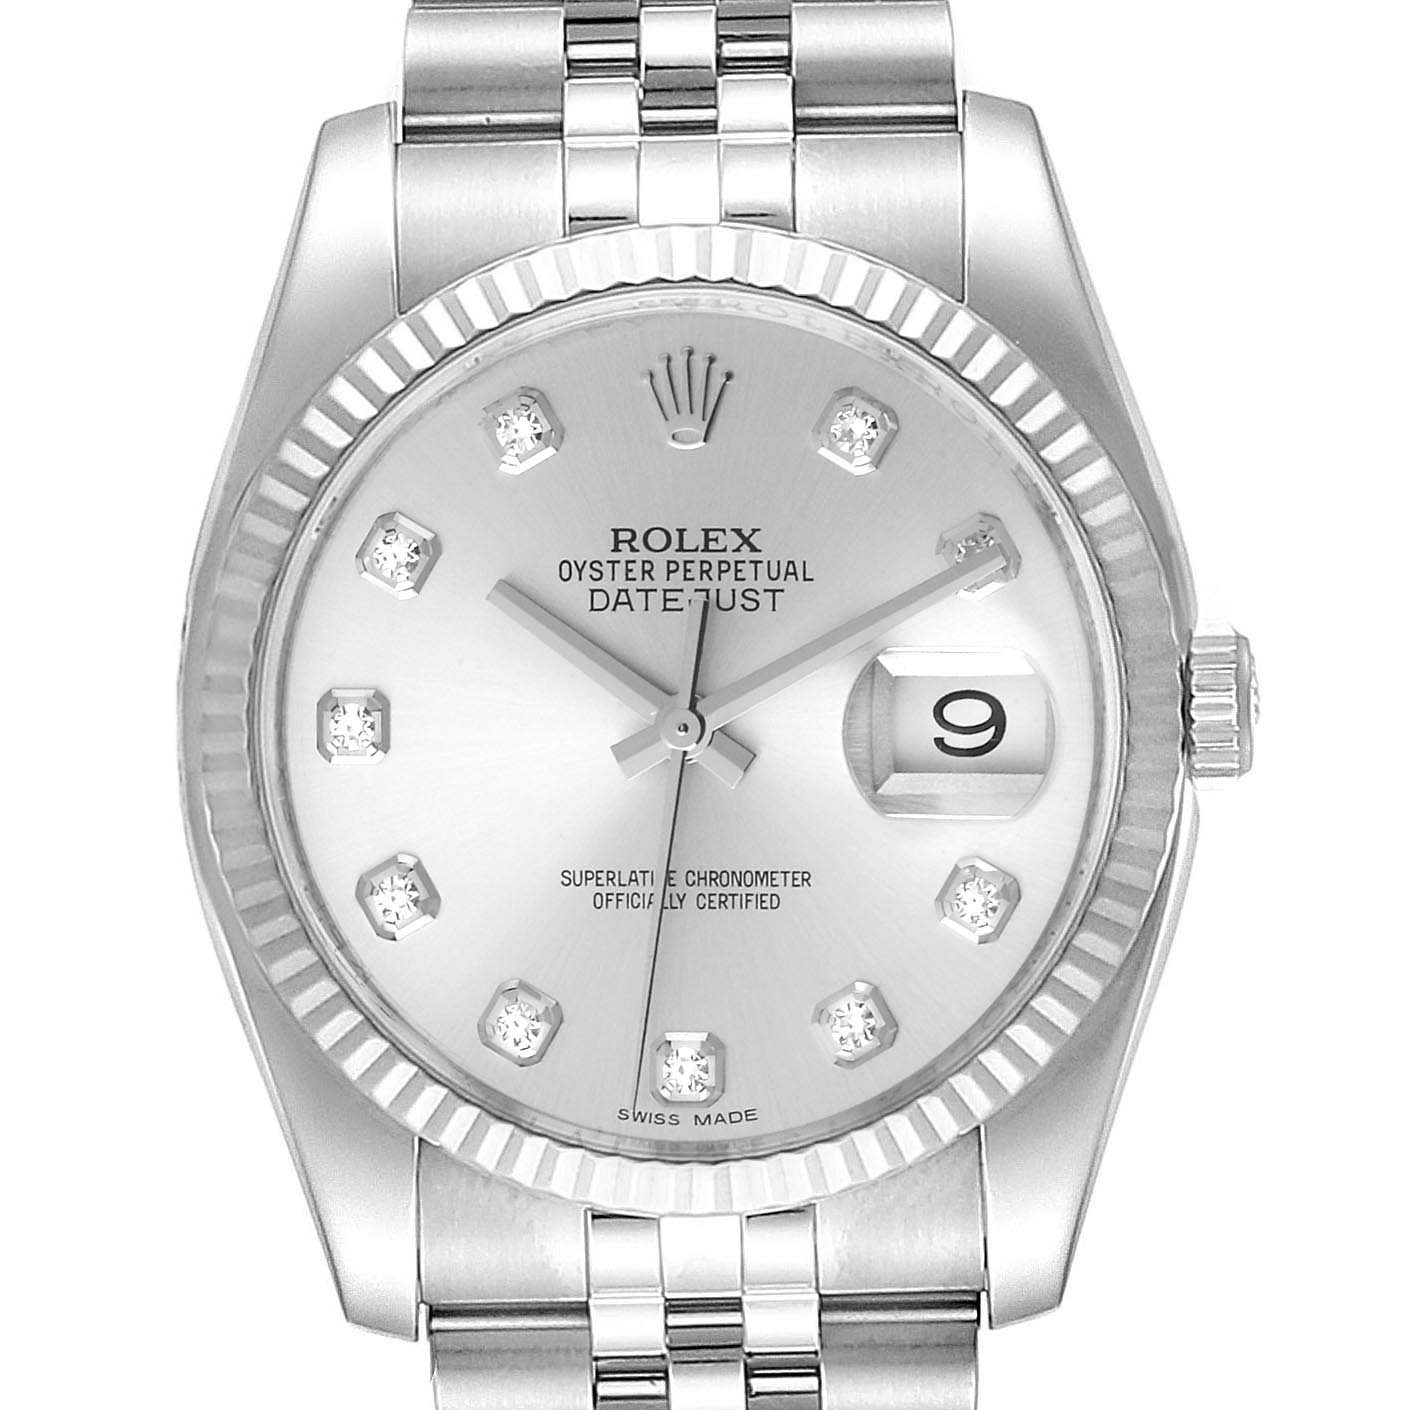 Rolex Datejust Steel White Gold Diamond Dial Mens Watch 116234 Box Card